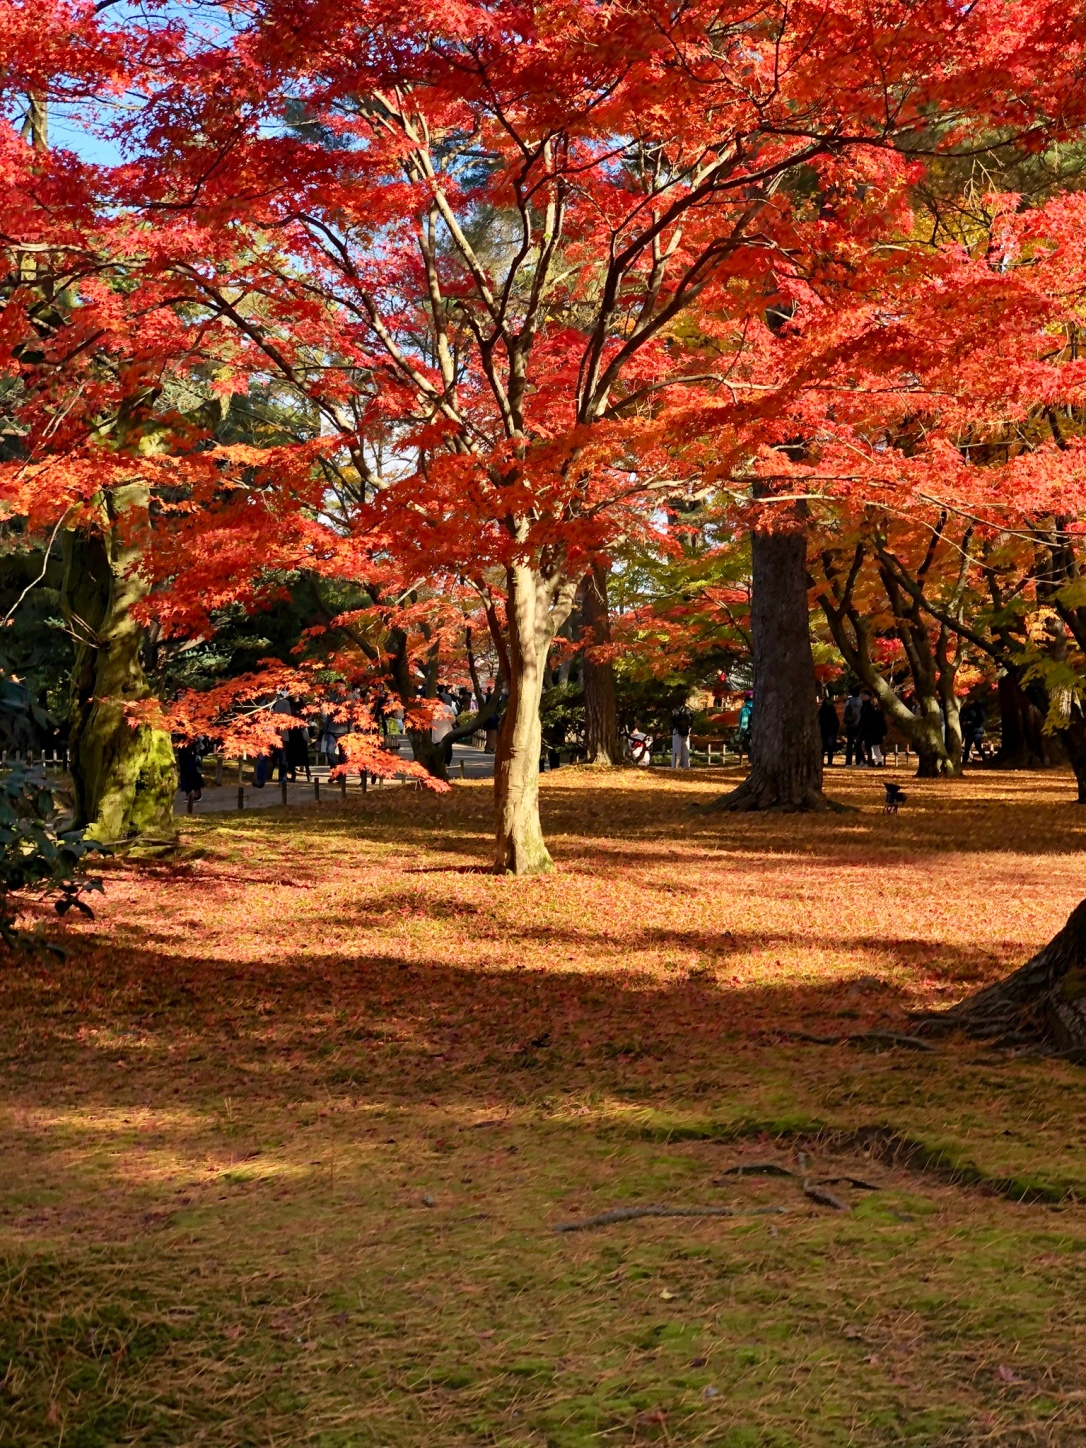 Japanese maples in Kenroku-en